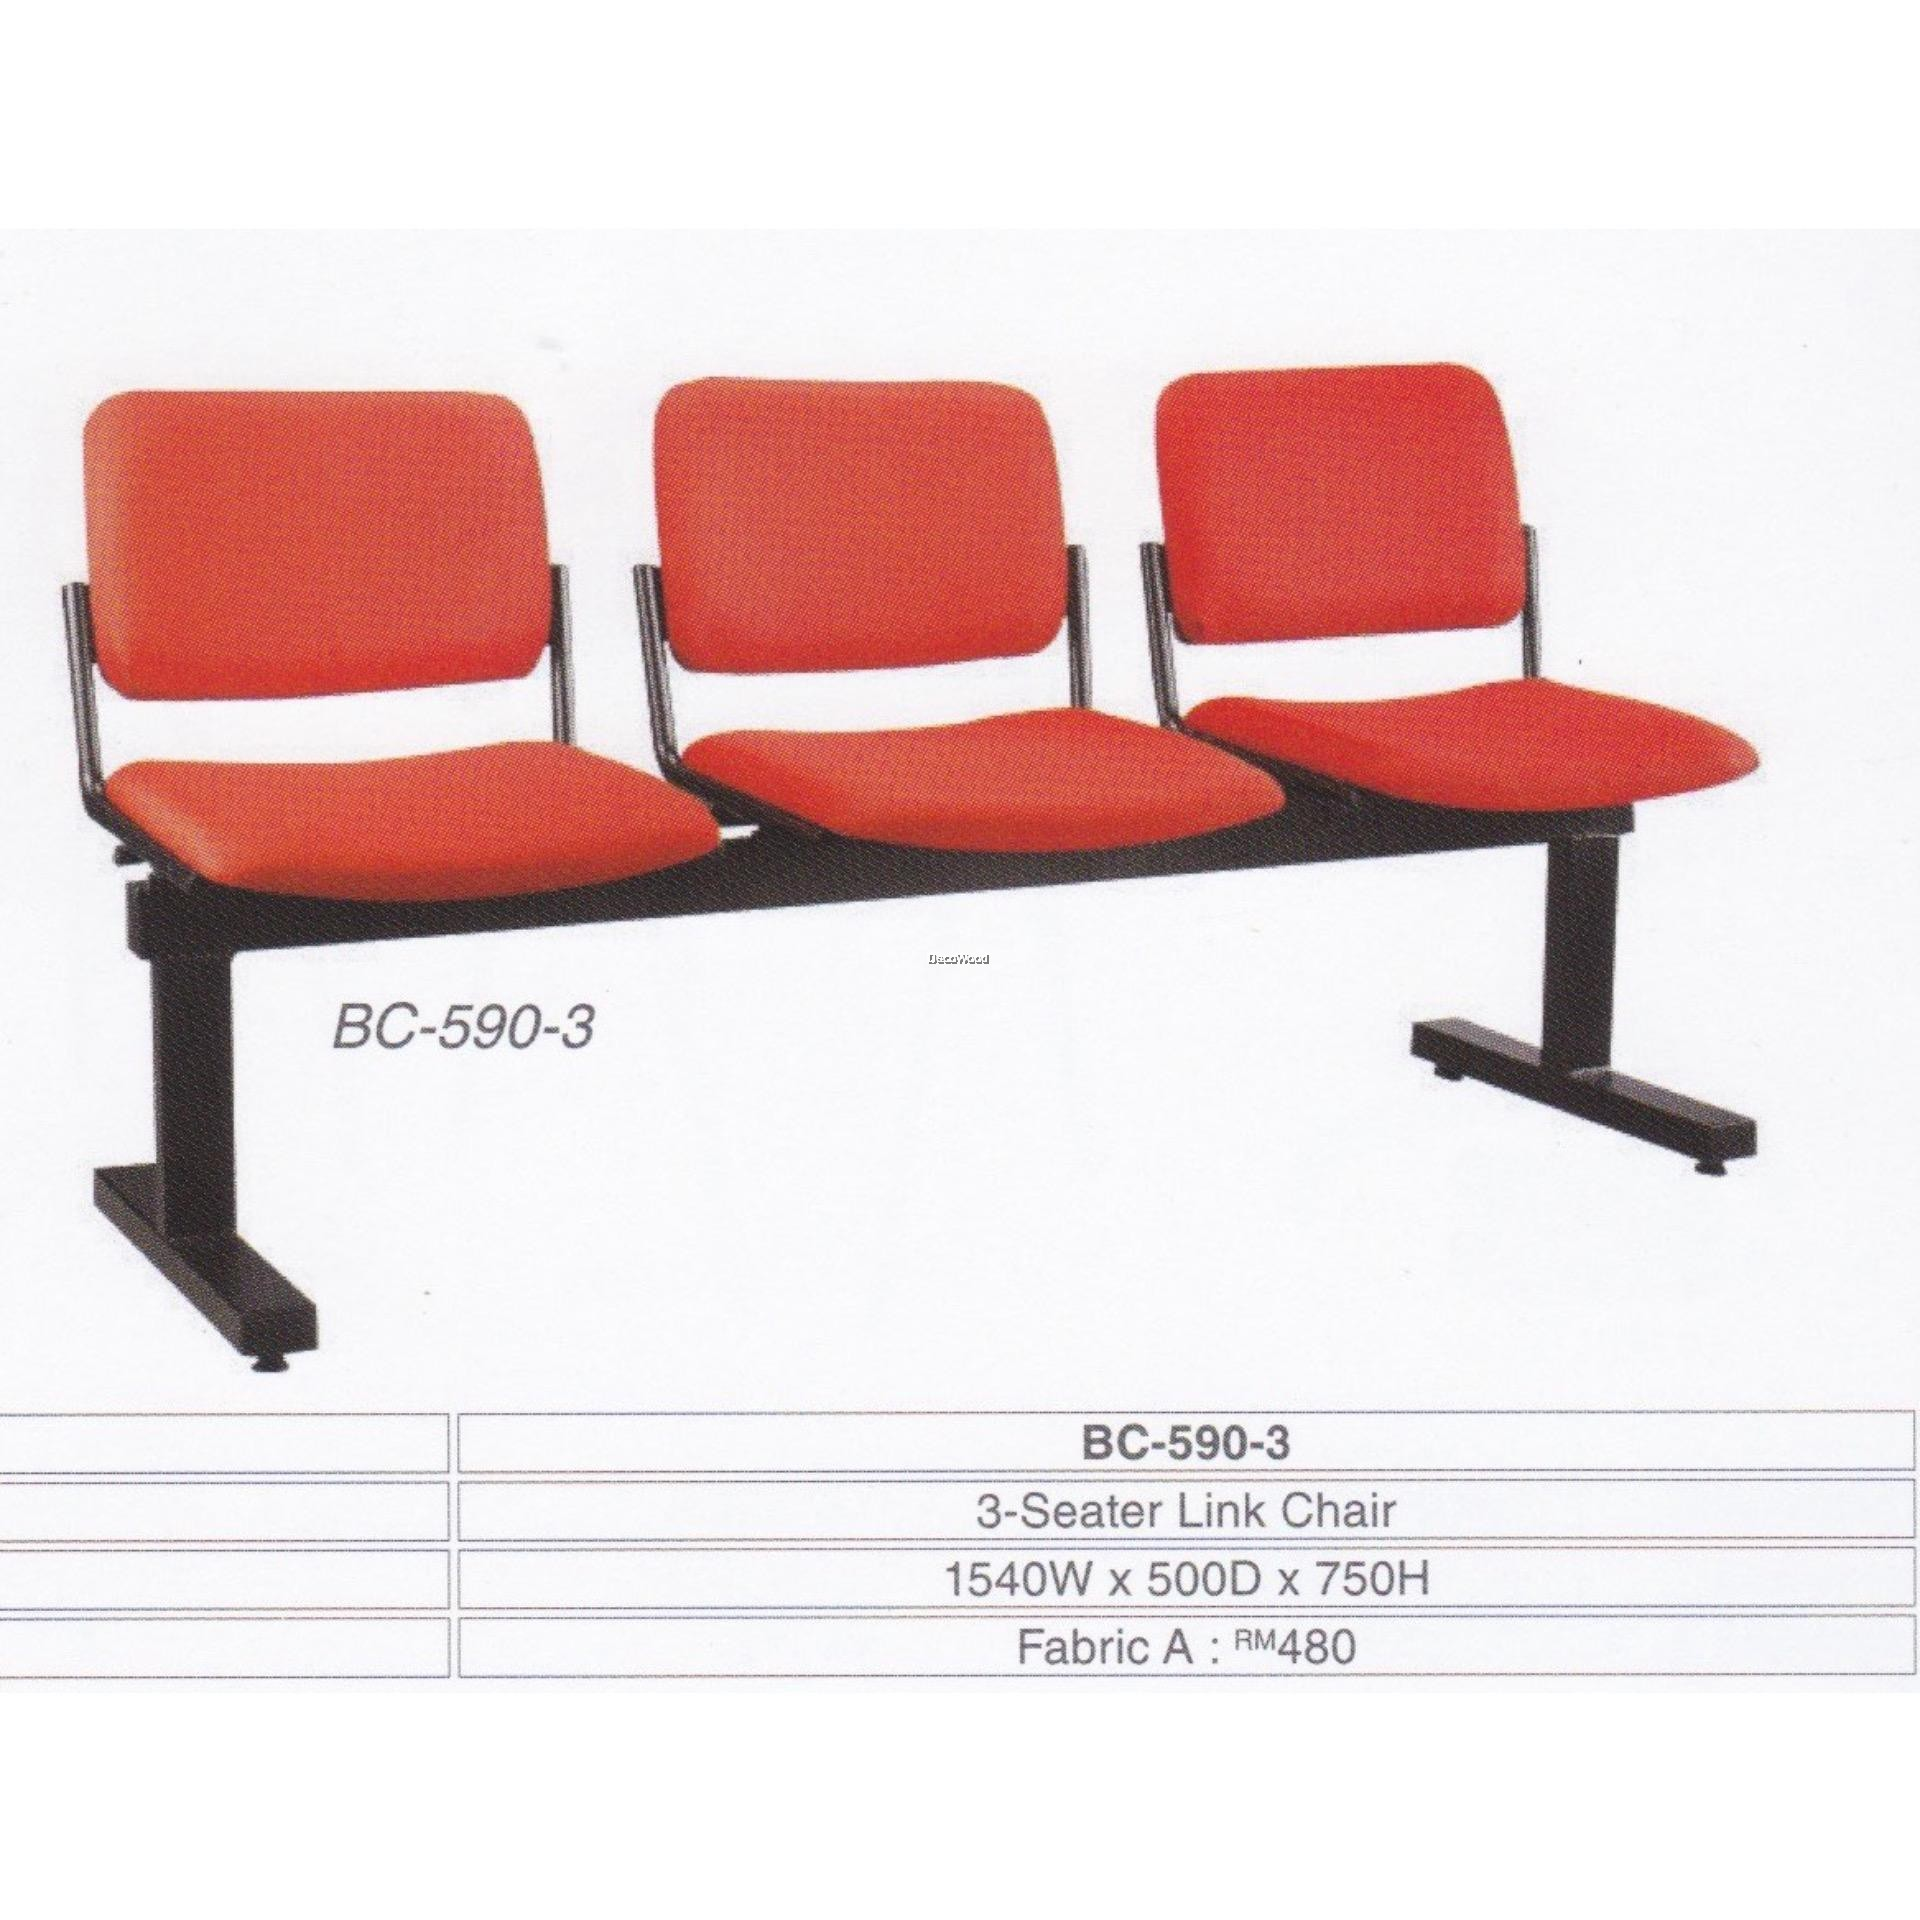 Fine Deco Waiting Area 3 Seater Link Cushion Chair Hall Clinic Office Red Color L1540Mm X D500Mm X H750Mm Pre Order 2 Weeks Pabps2019 Chair Design Images Pabps2019Com